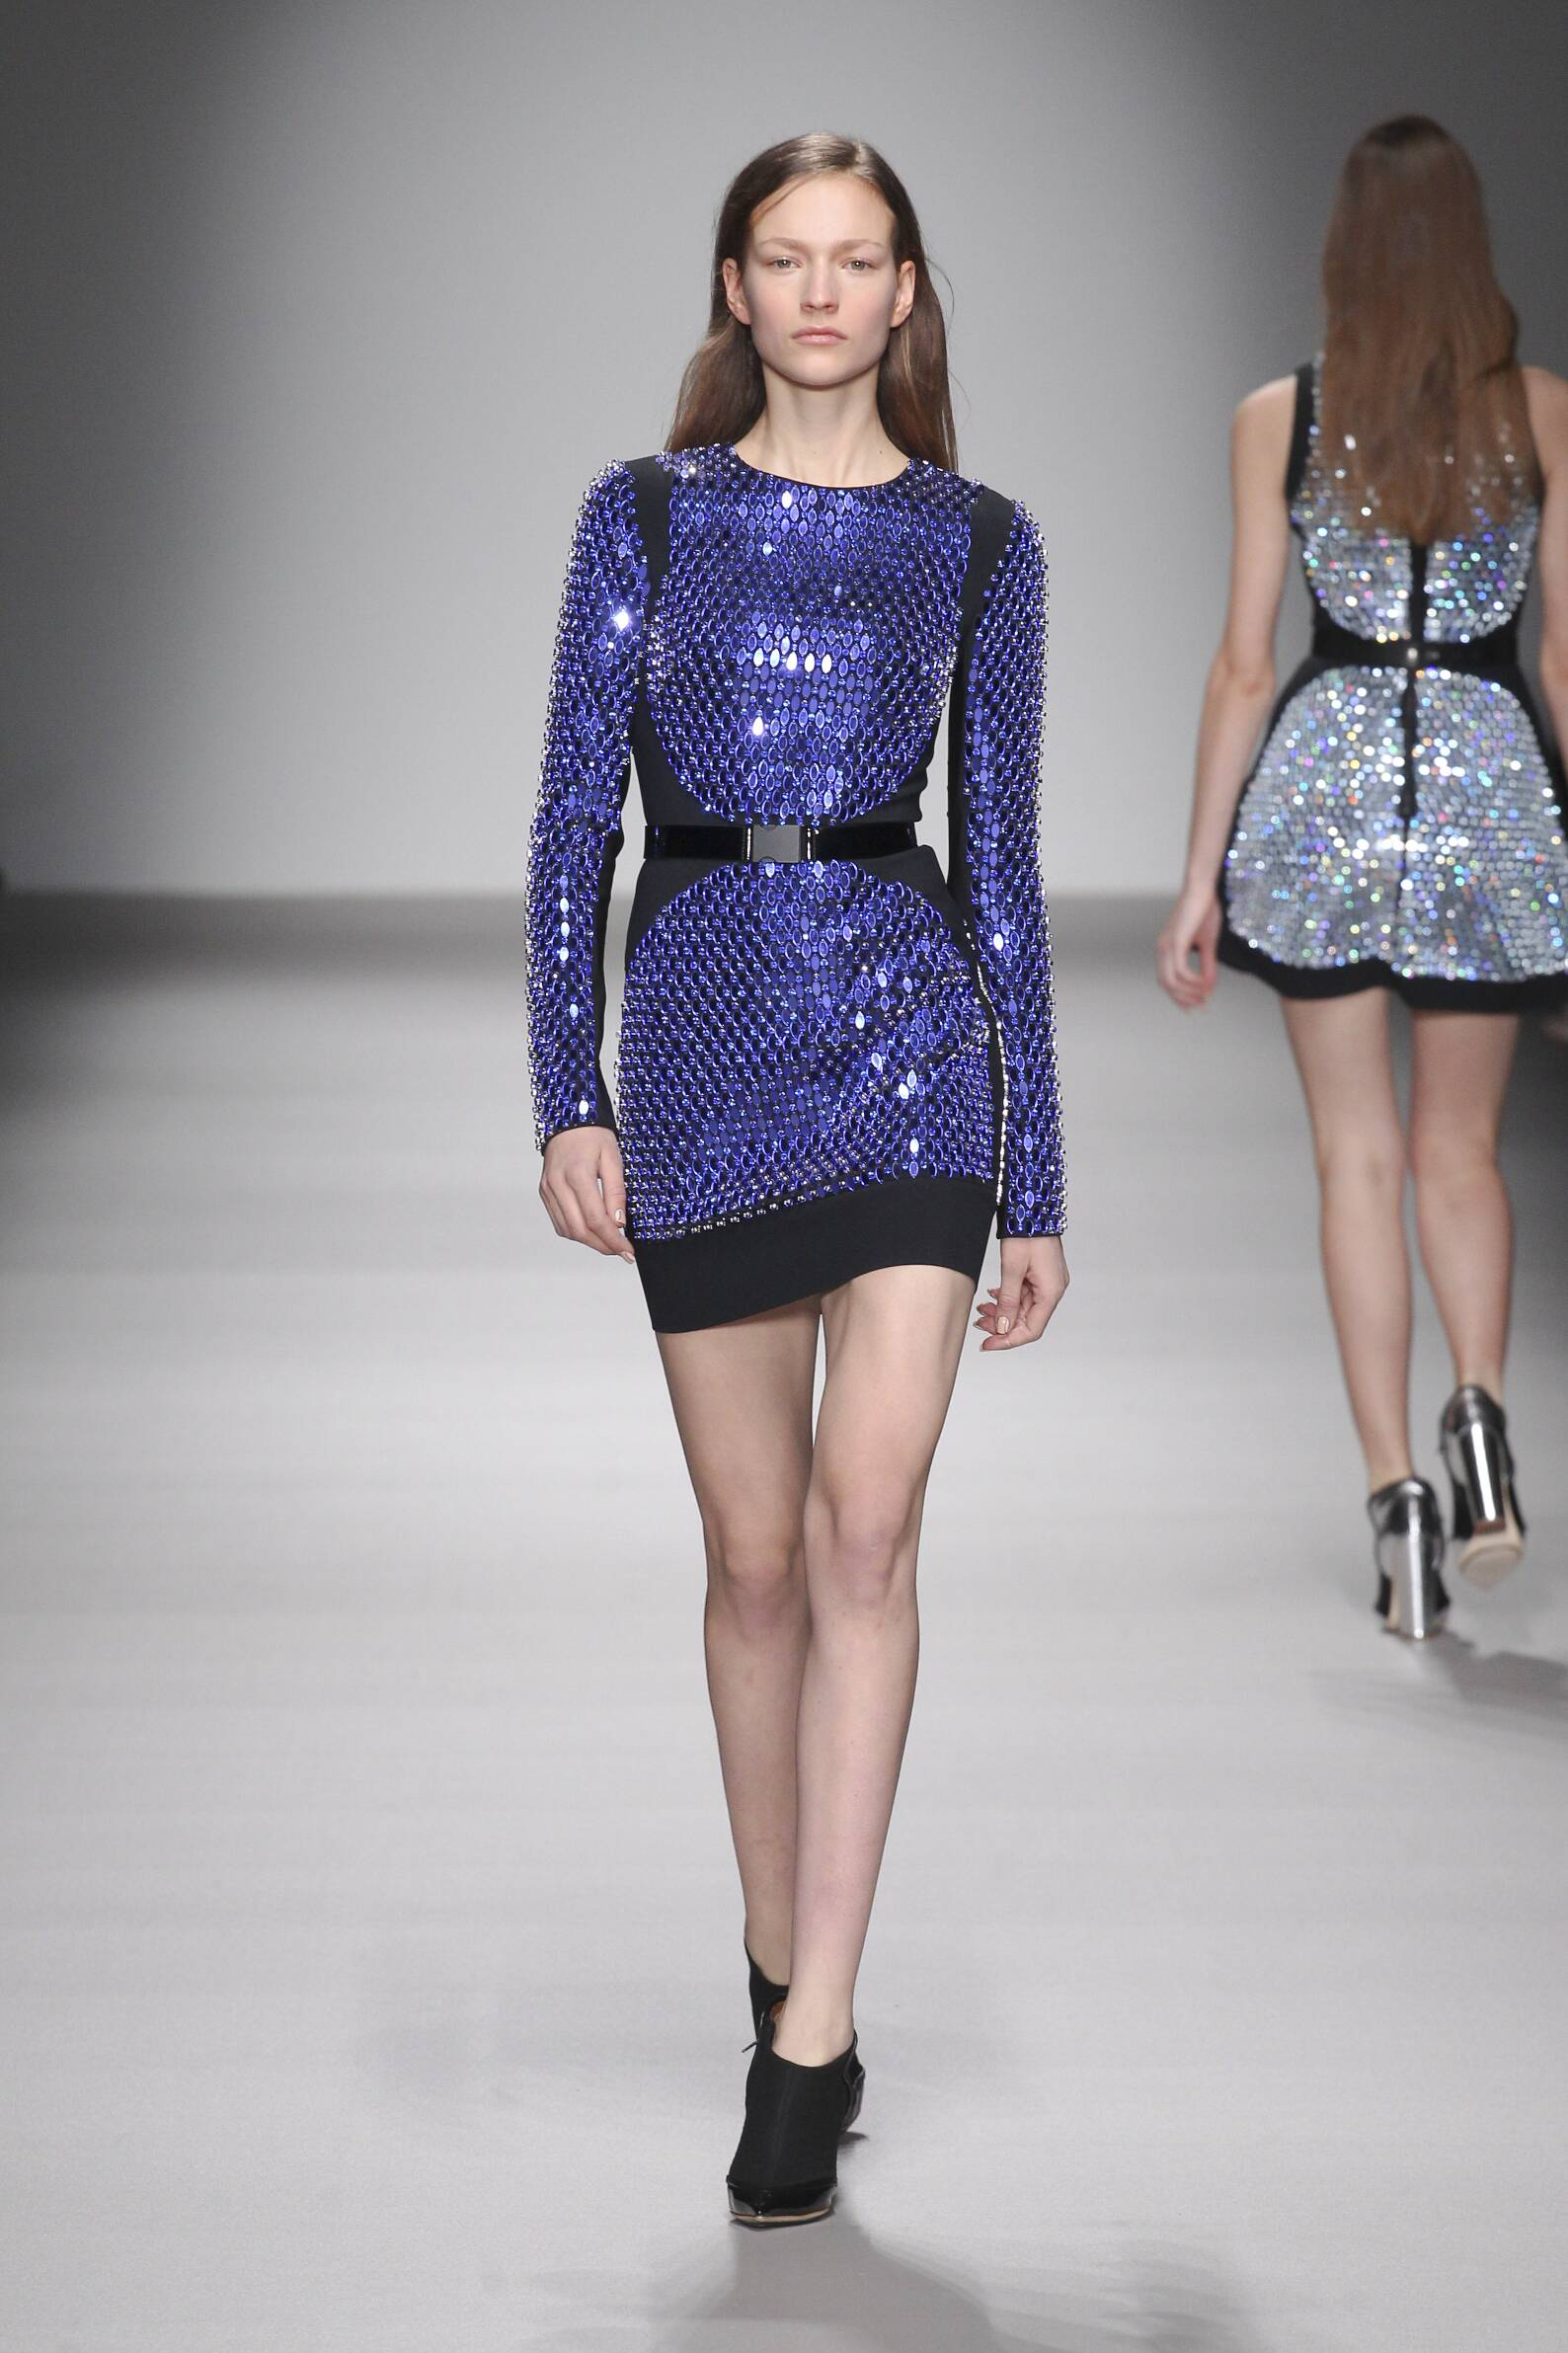 David Koma Collection Fashion Show FW 2015 2016